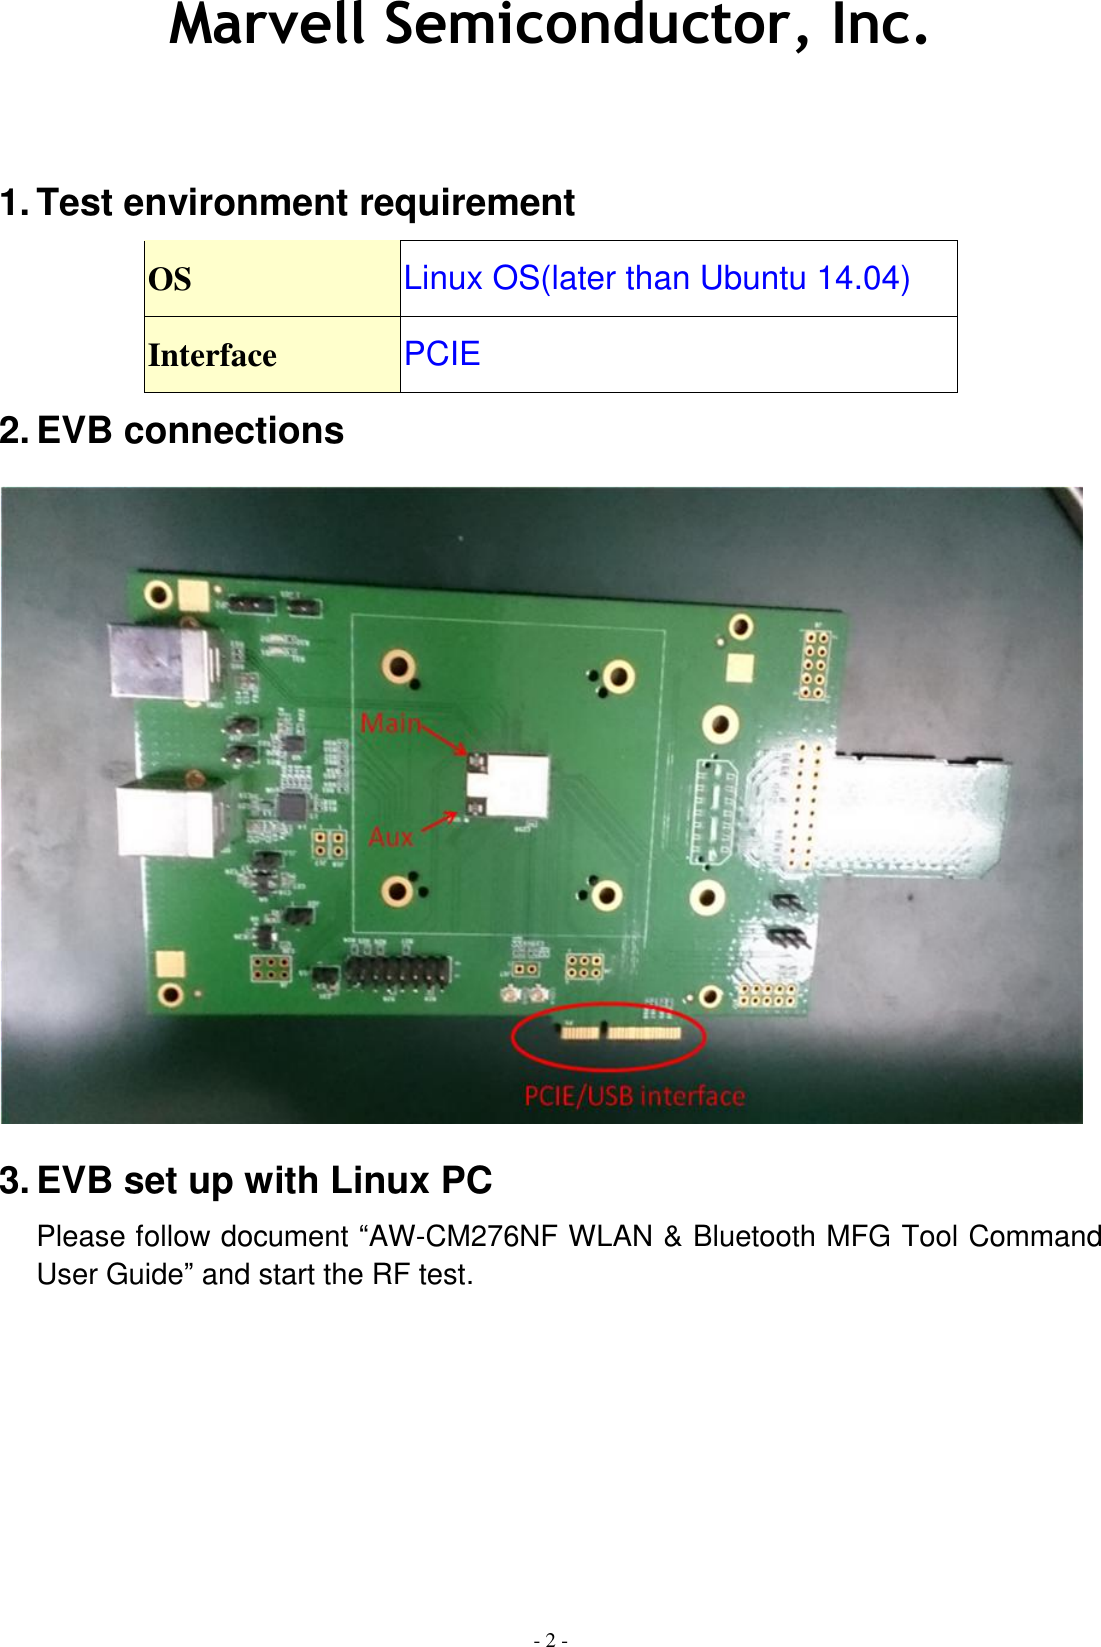 "Marvell Semiconductor, Inc. - 2 -    1. Test environment requirement OS Linux OS(later than Ubuntu 14.04) Interface PCIE 2. EVB connections  3. EVB set up with Linux PC Please follow document ""AW-CM276NF WLAN & Bluetooth MFG Tool Command User Guide"" and start the RF test."